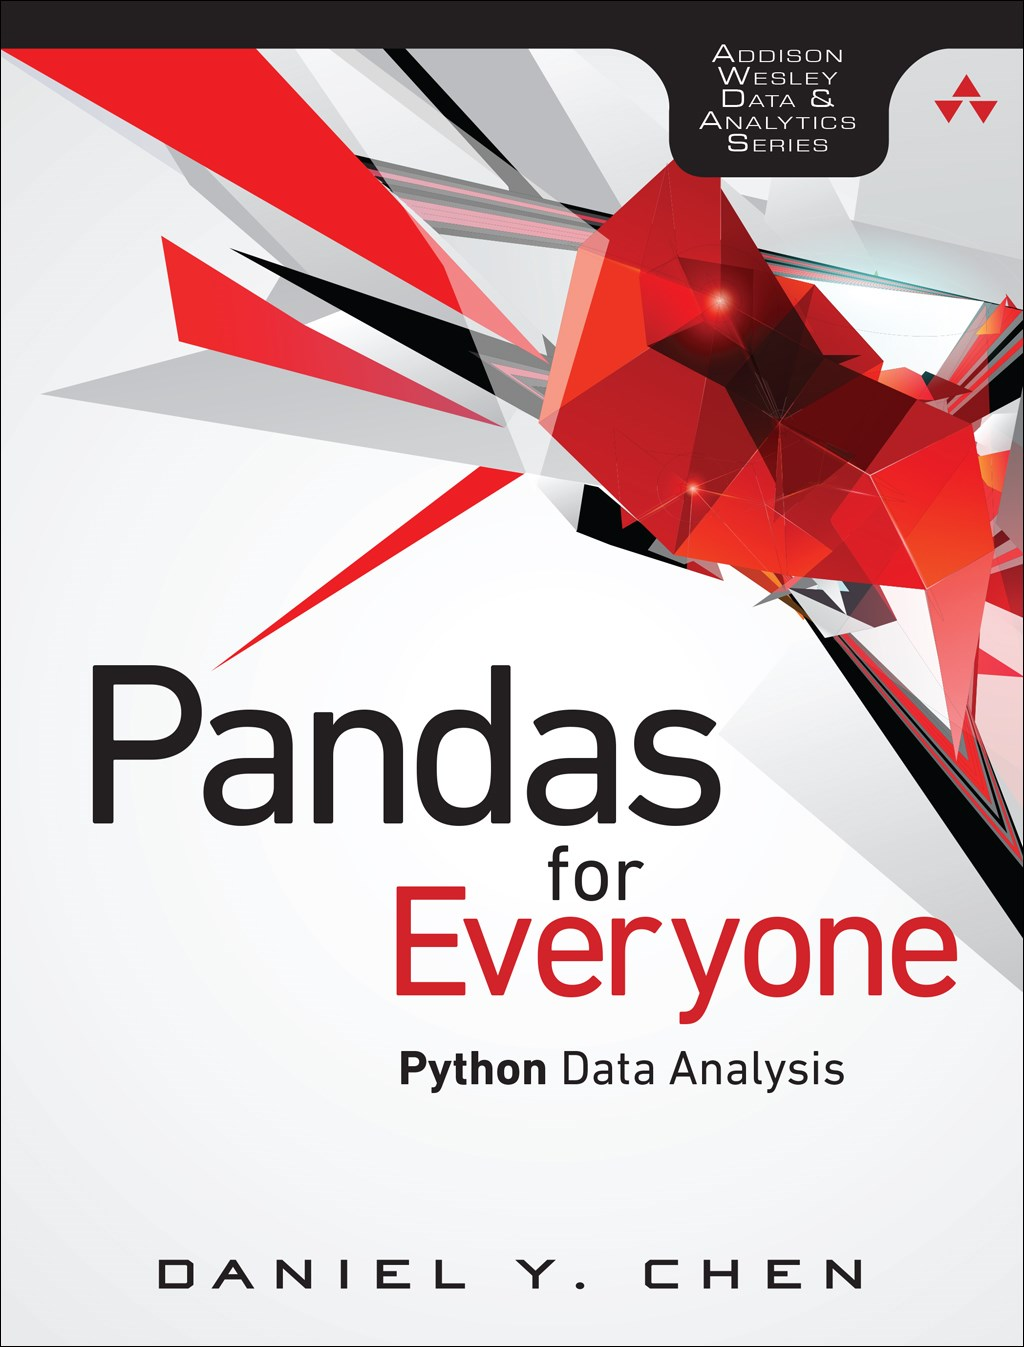 Pandas for Everyone: Python Data Analysis